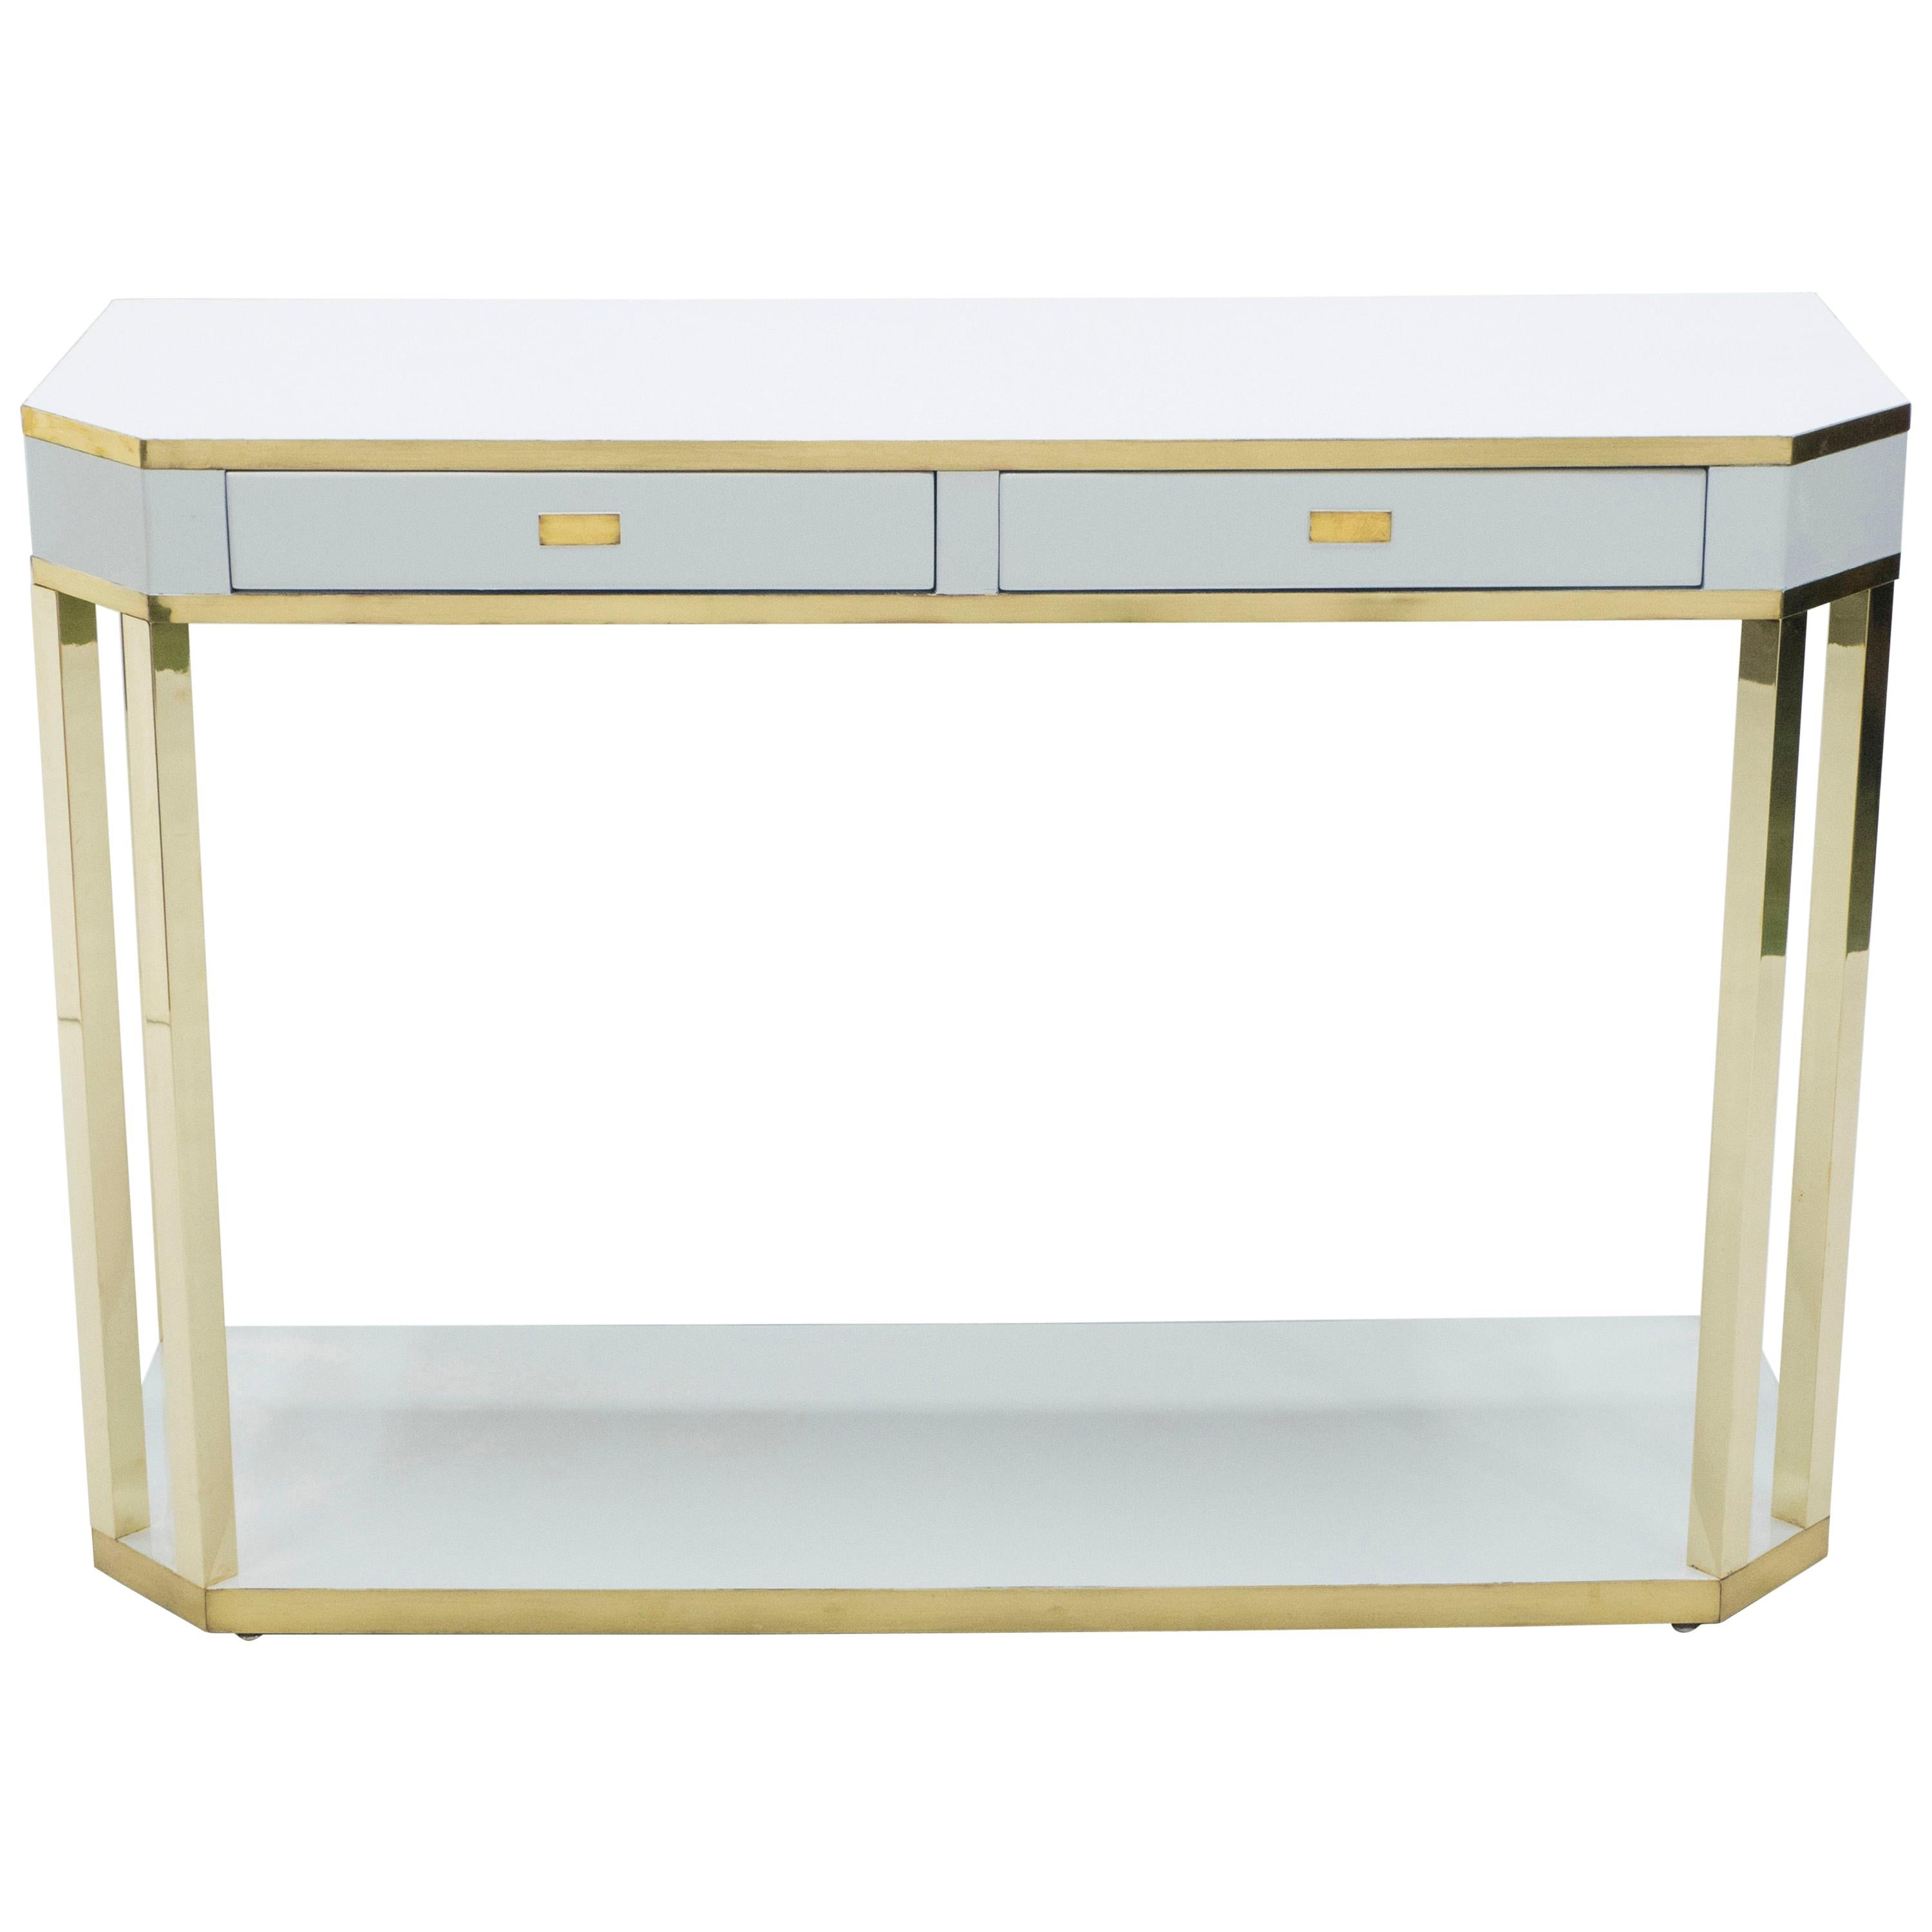 J.C. Mahey White Lacquer and Brass Console, 1970s